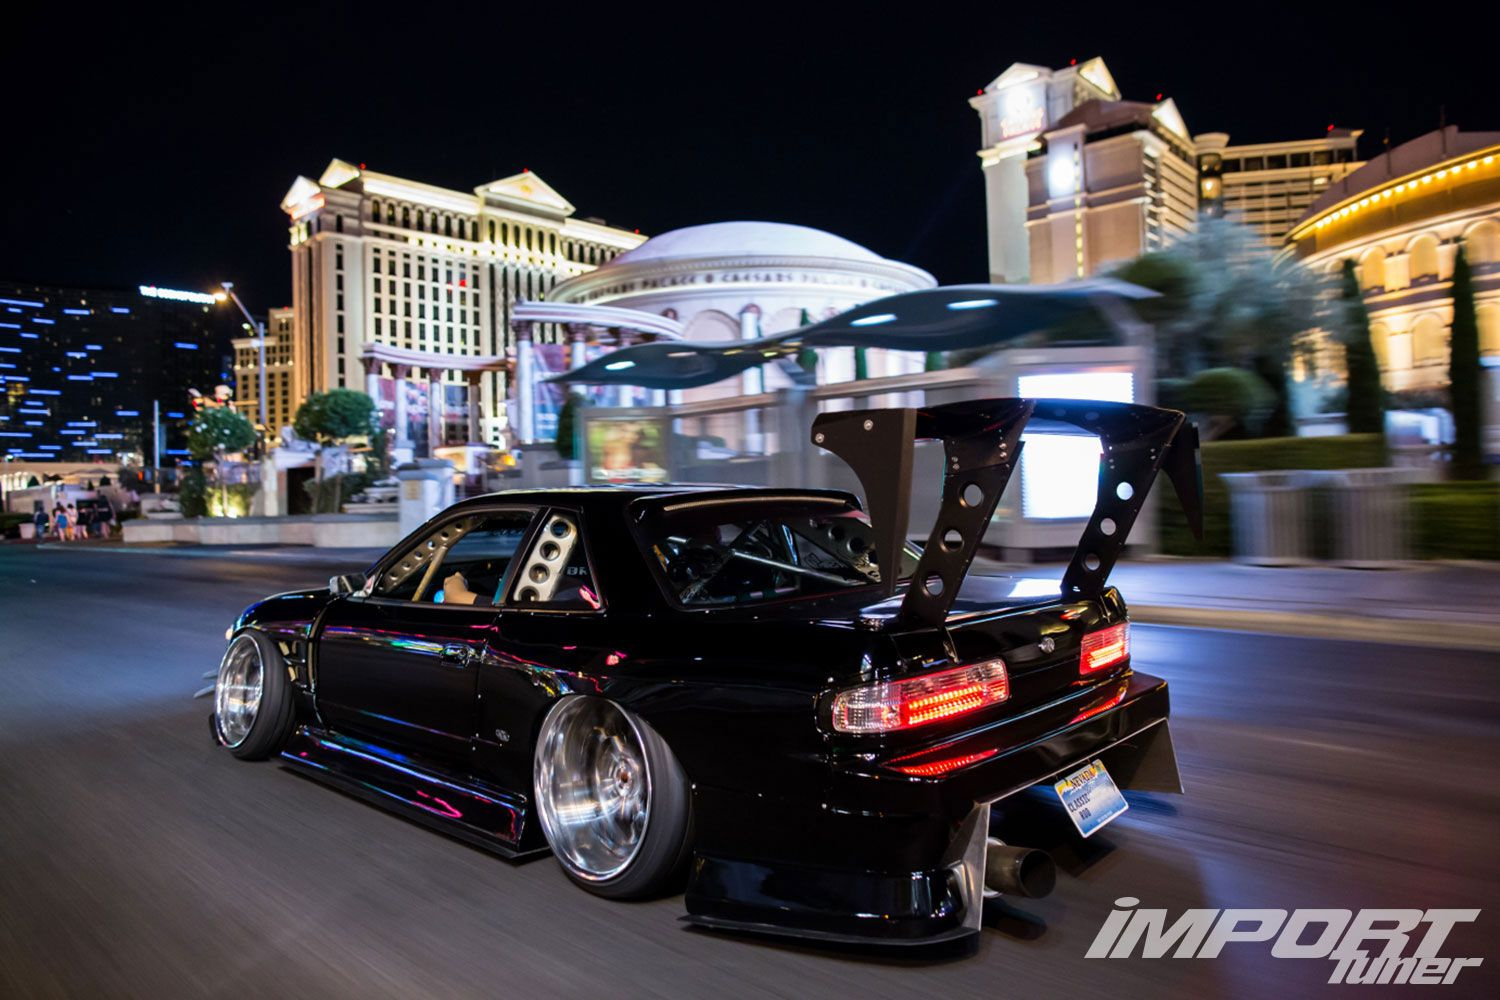 Rainer S S13 Featured In Import Tuner Stance Suspension